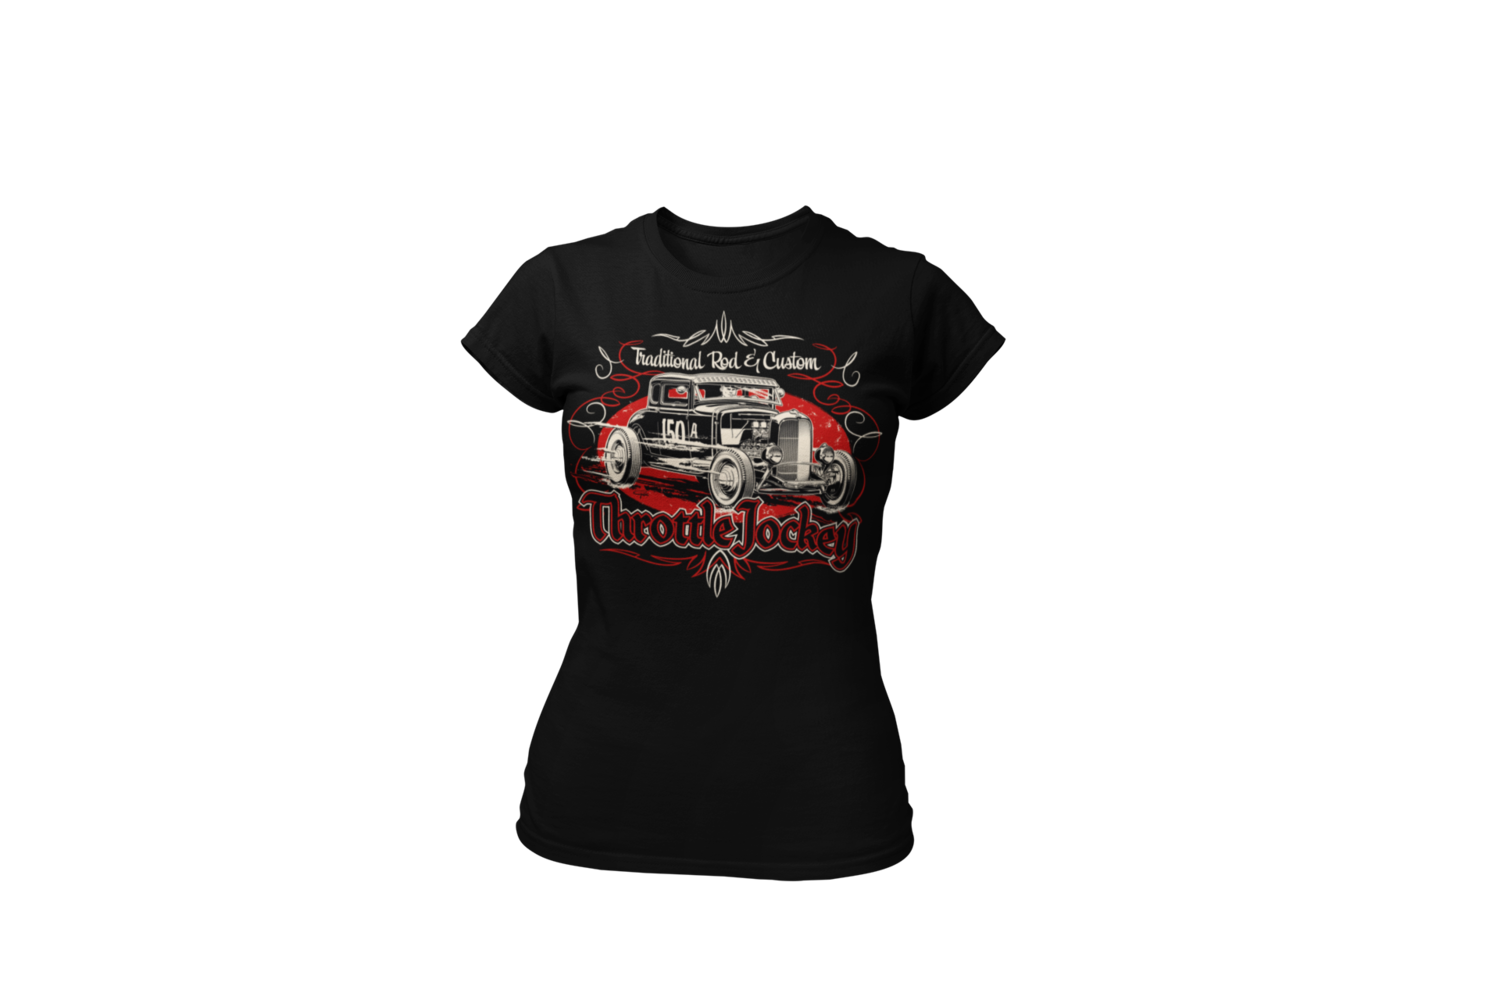 """THROTTLE JOCKEY """"Coupe"""" T-SHIRT WOMAN by Ger """"Dutch Courage"""" Peters artwork"""